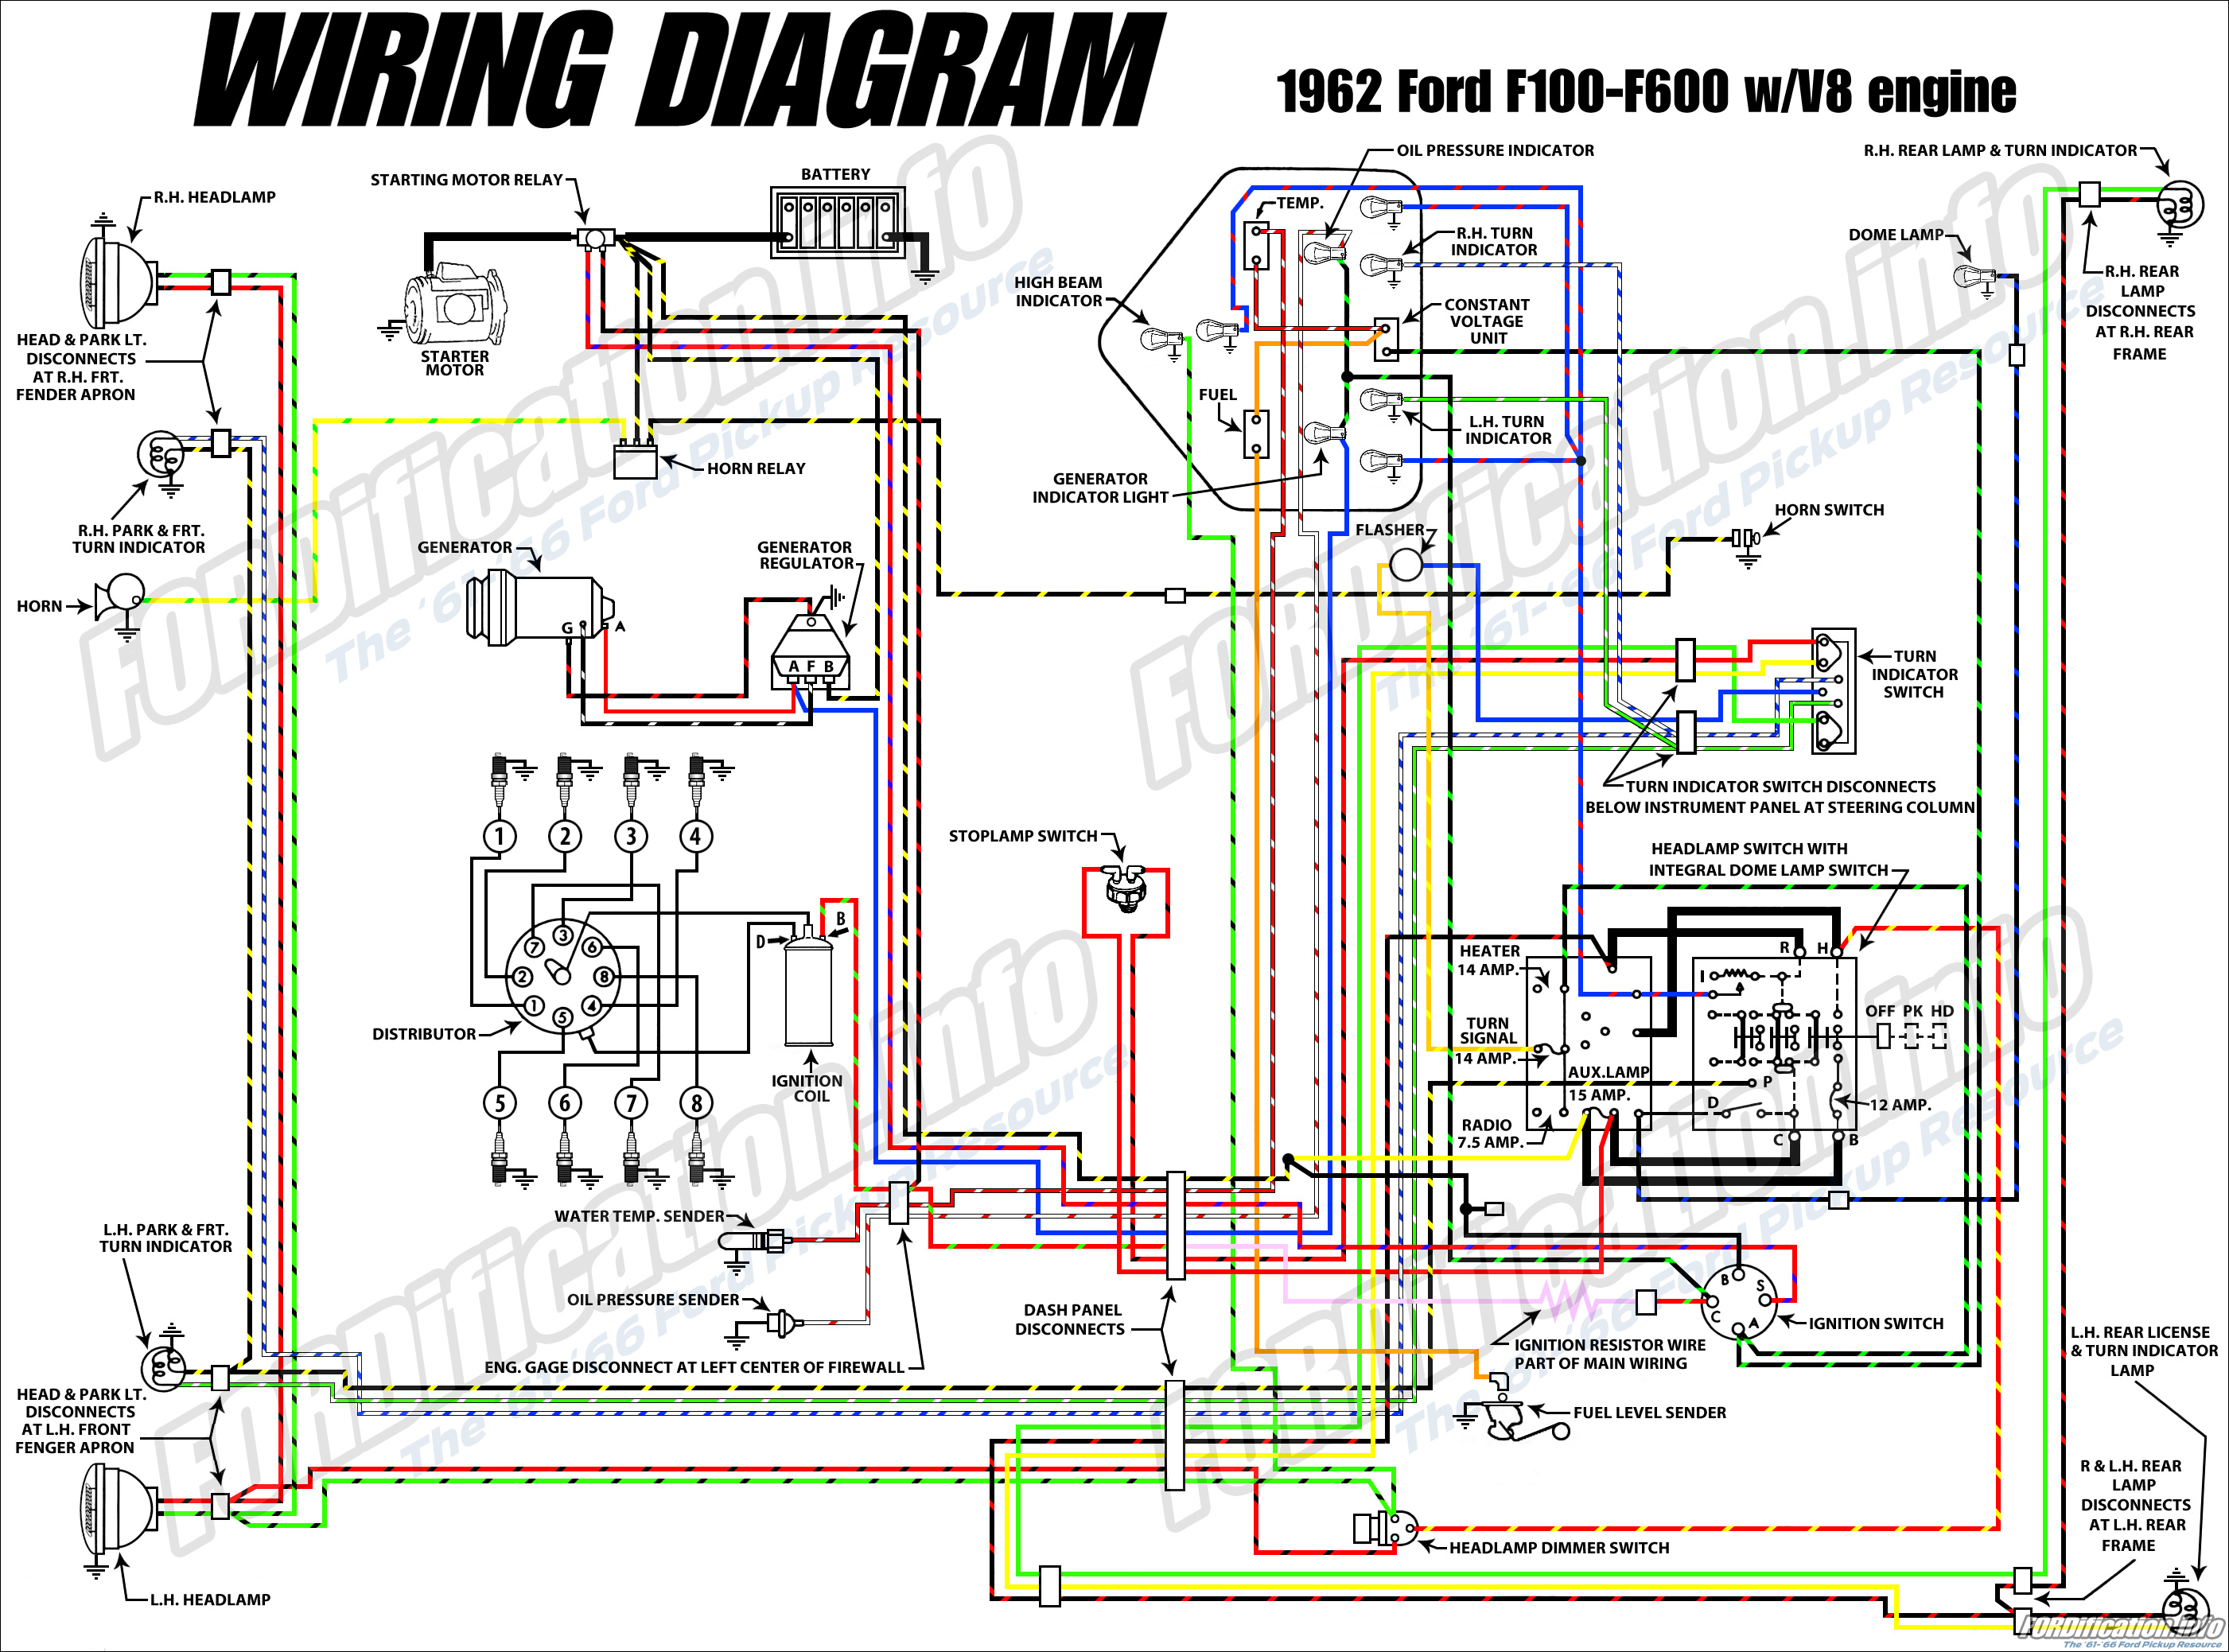 1962fordtruck_masterwiring 1962 ford truck wiring diagrams fordification info the '61 '66 1968 ford wiring diagrams at arjmand.co